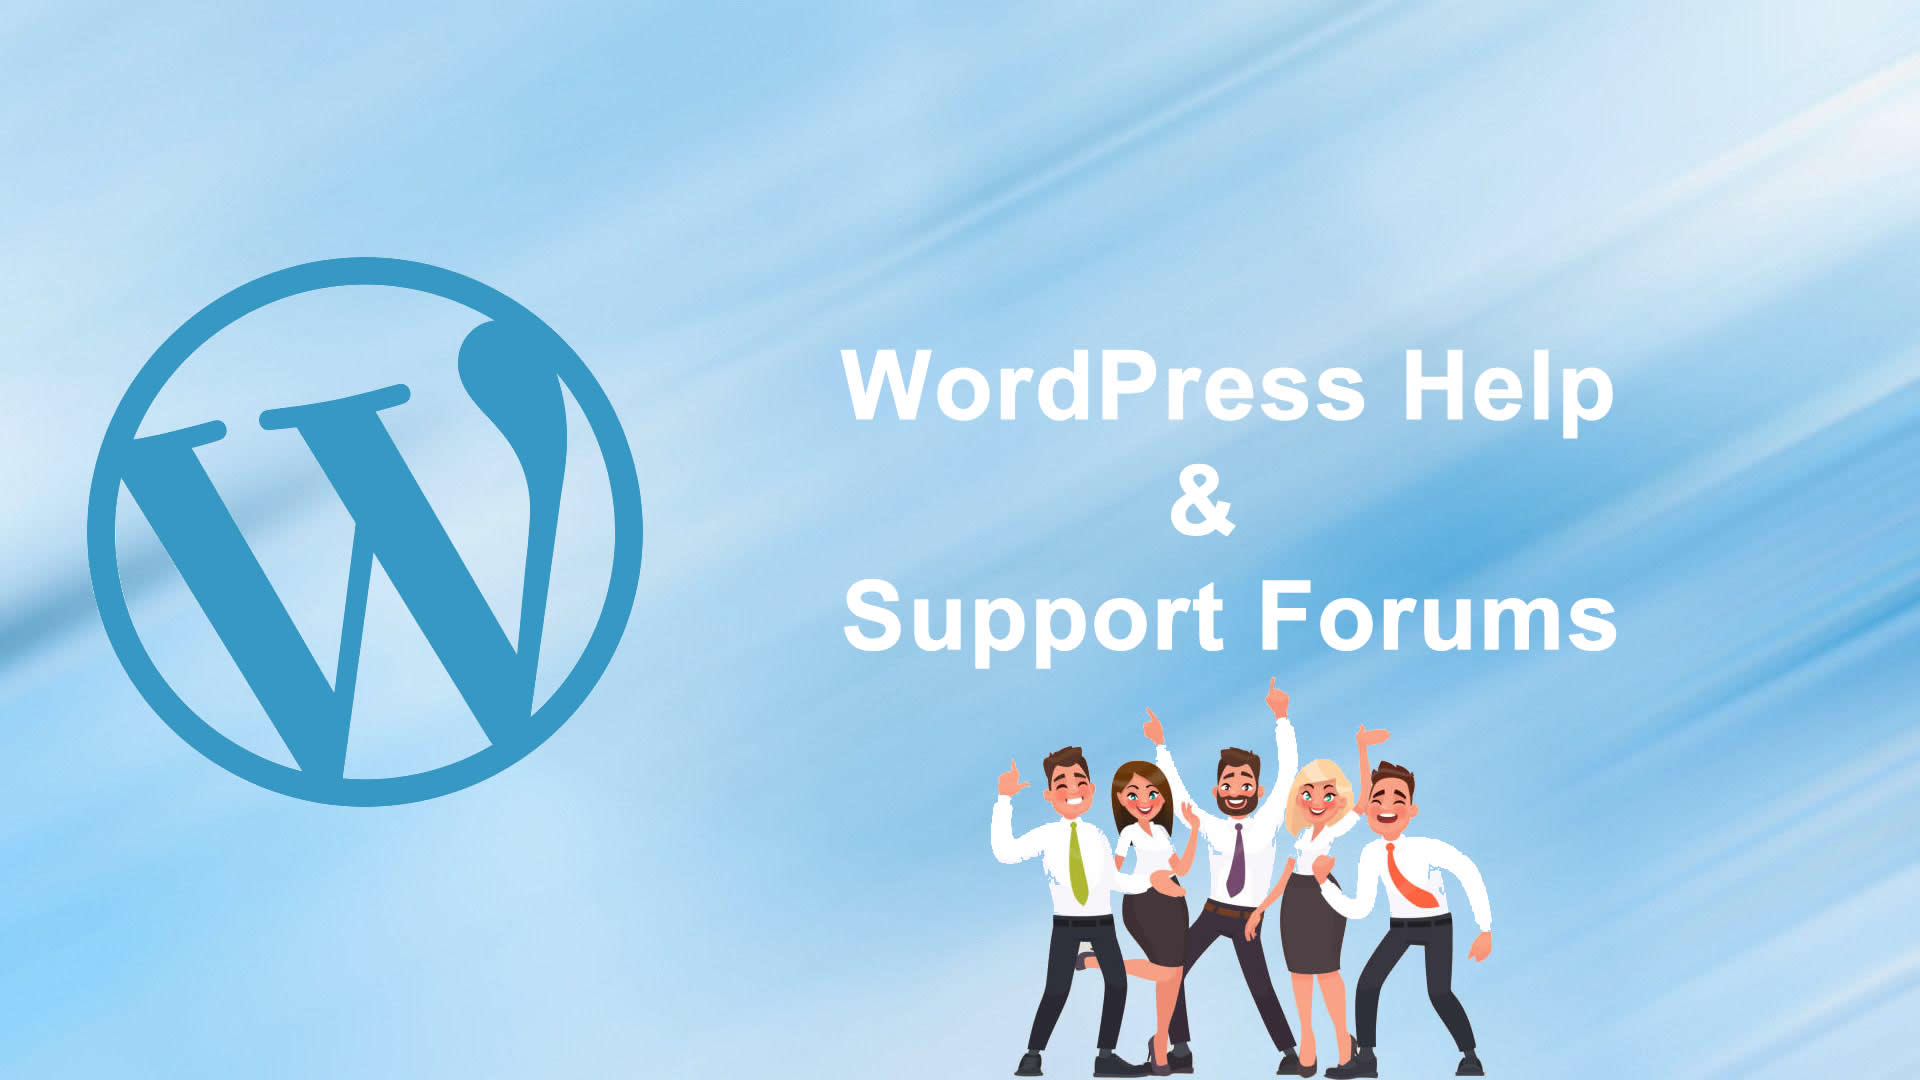 wordpress help support forums